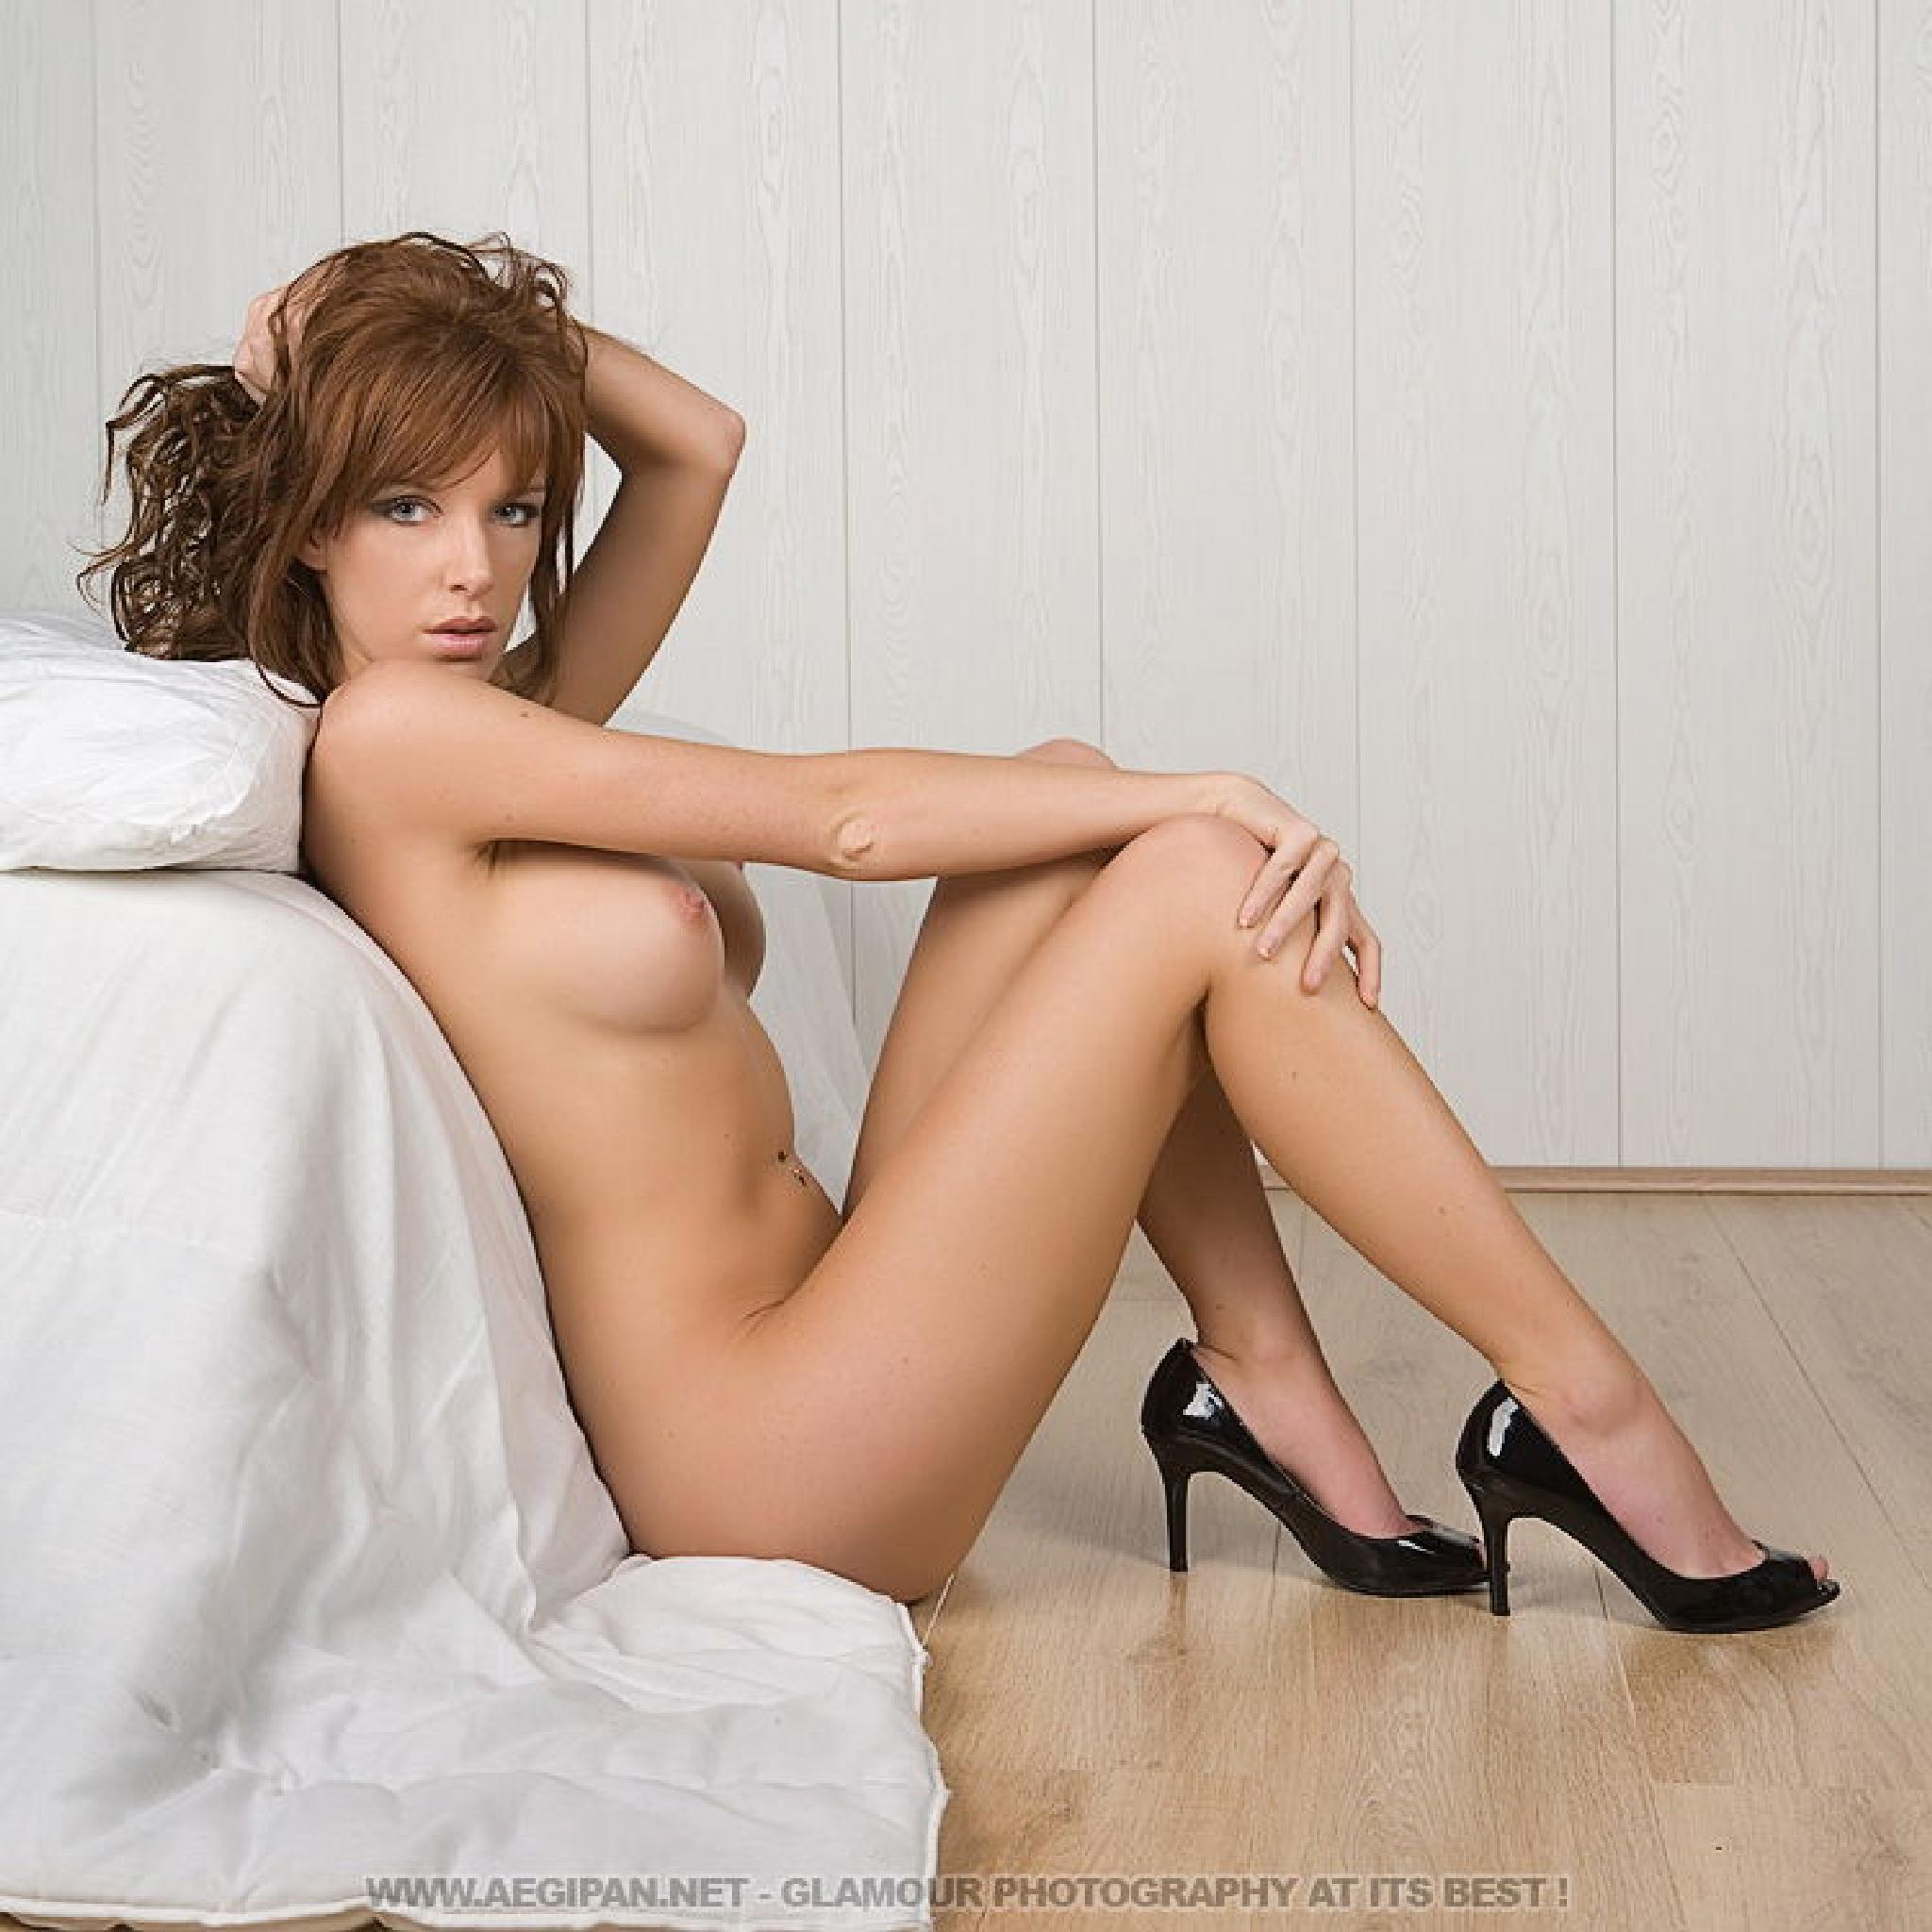 Photo in Nude #aegipan #glamour #nude #artistic #hot #sexy #redhead #woman #girl #babe #topless #bottomless #high heels #bed #pretty #sensual #model